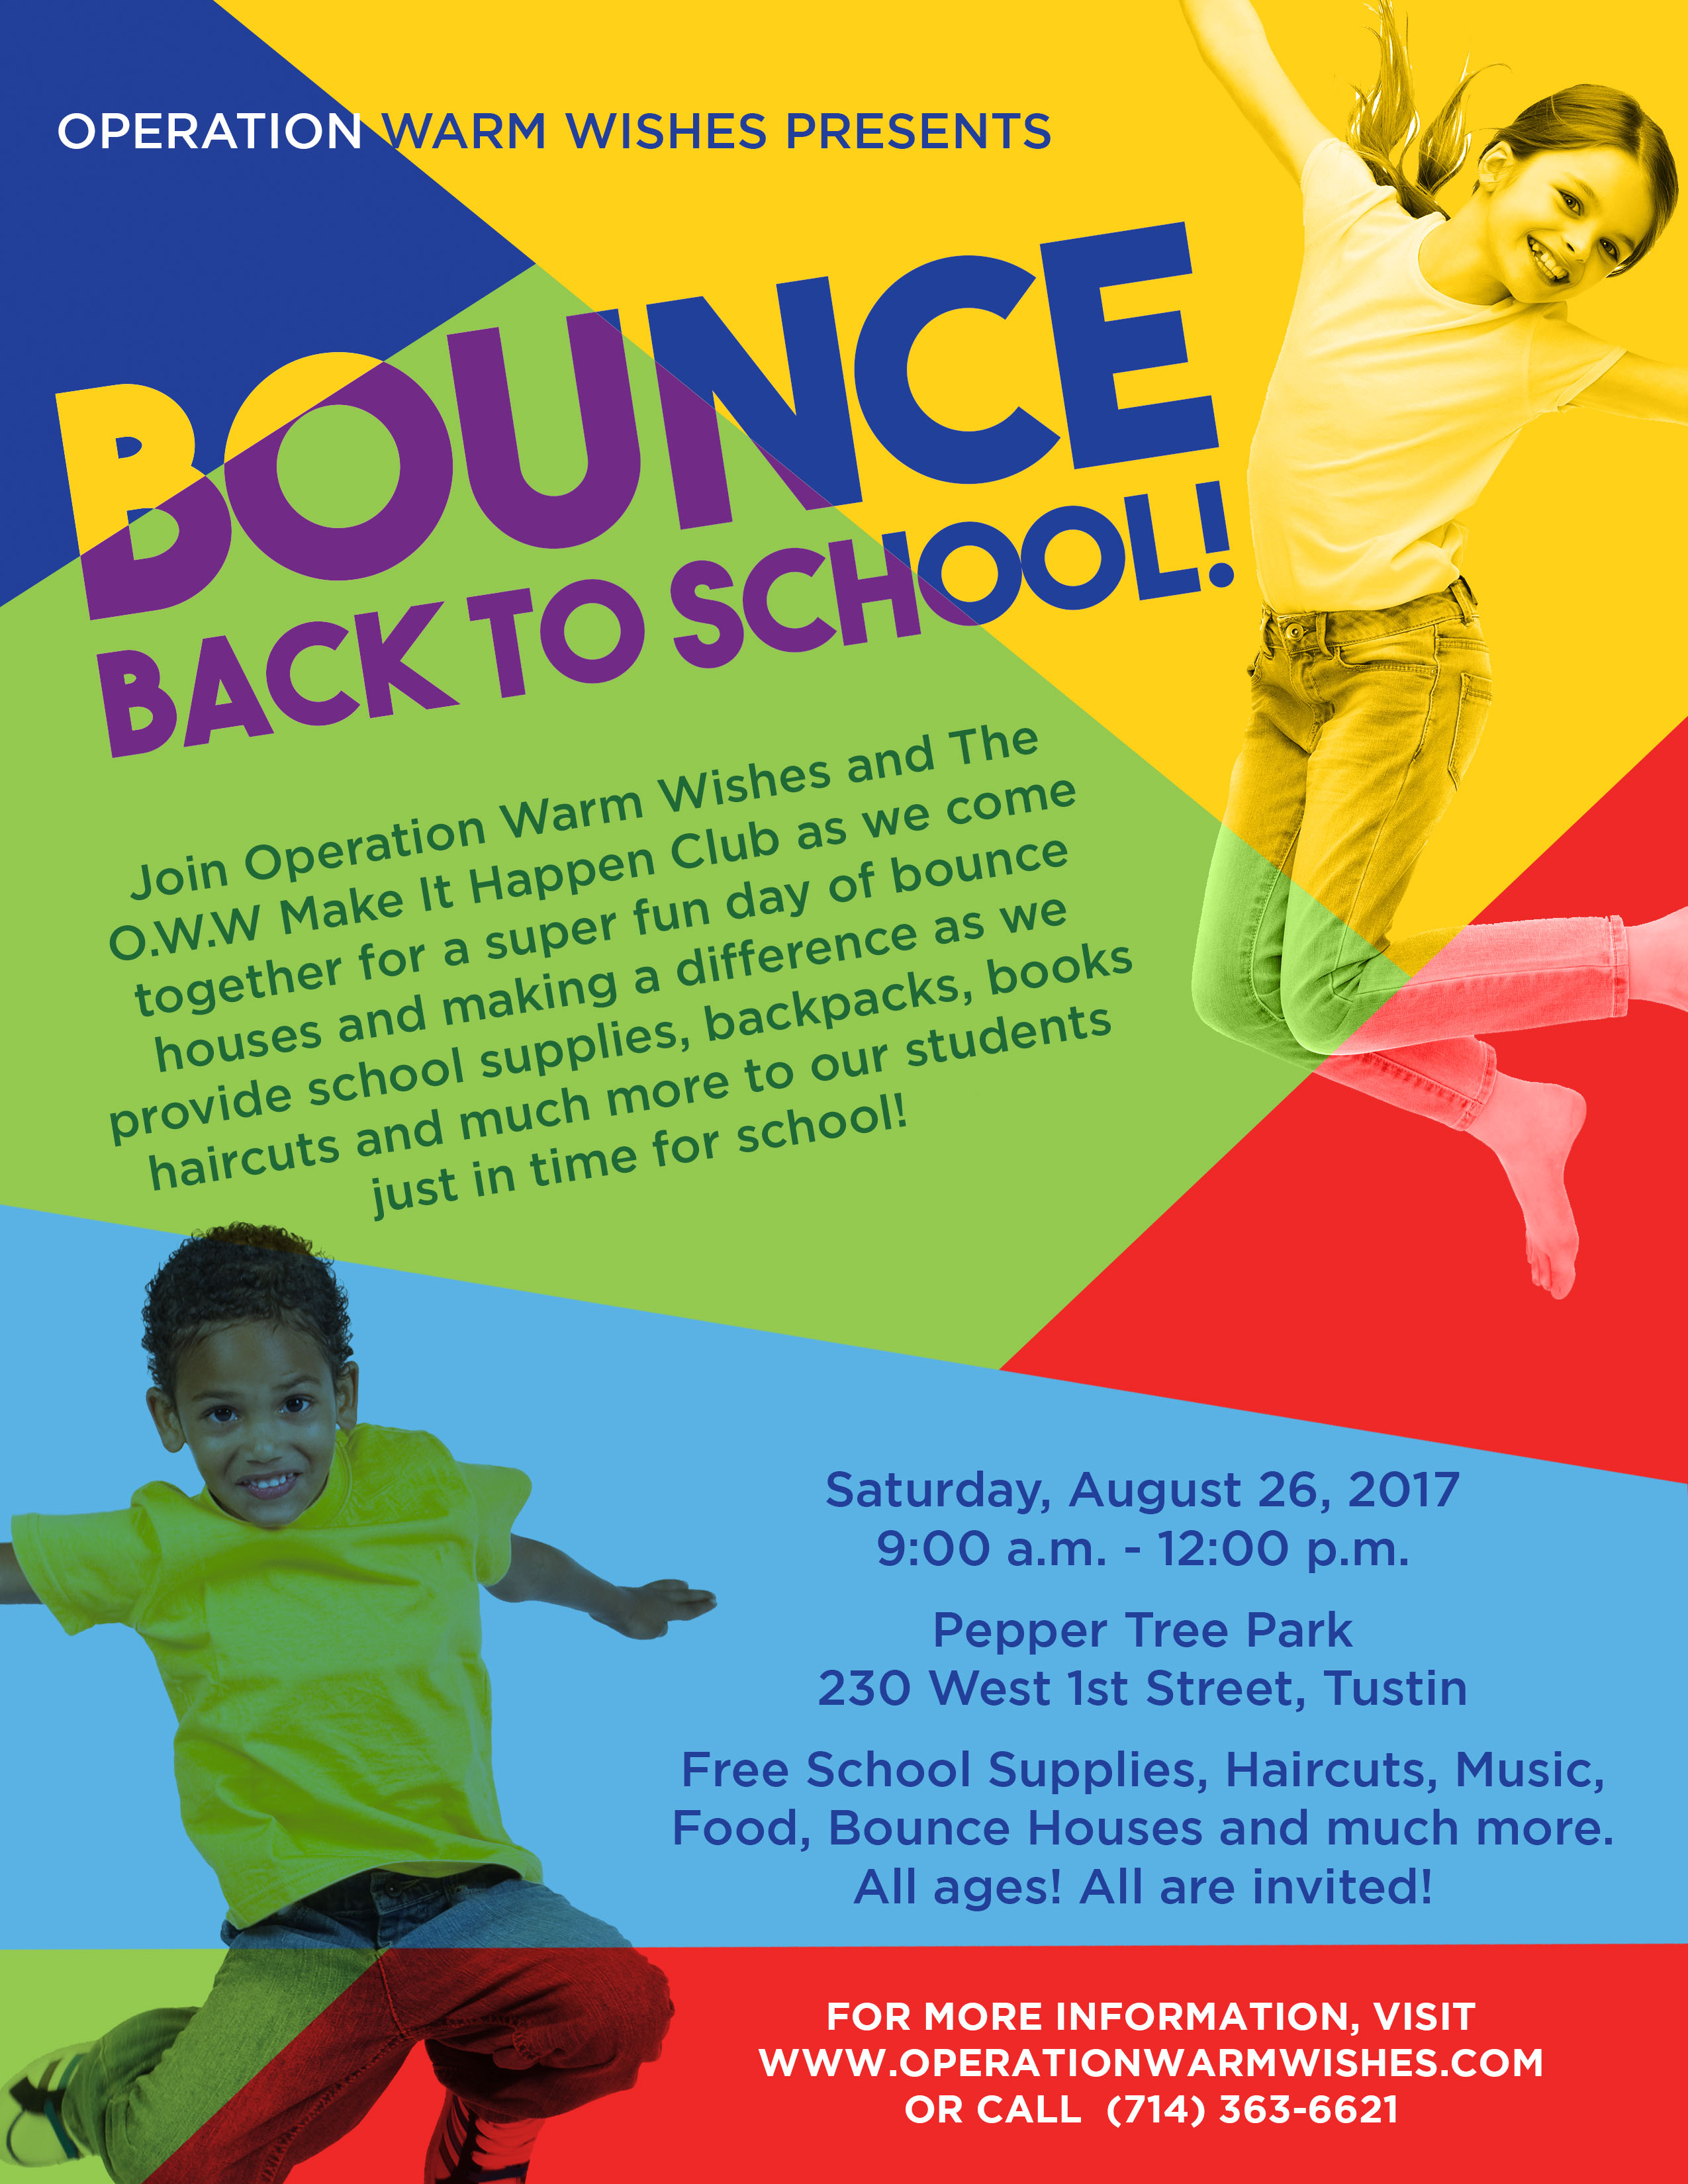 Operation Warm Wishes Presents: Bounce Back To School